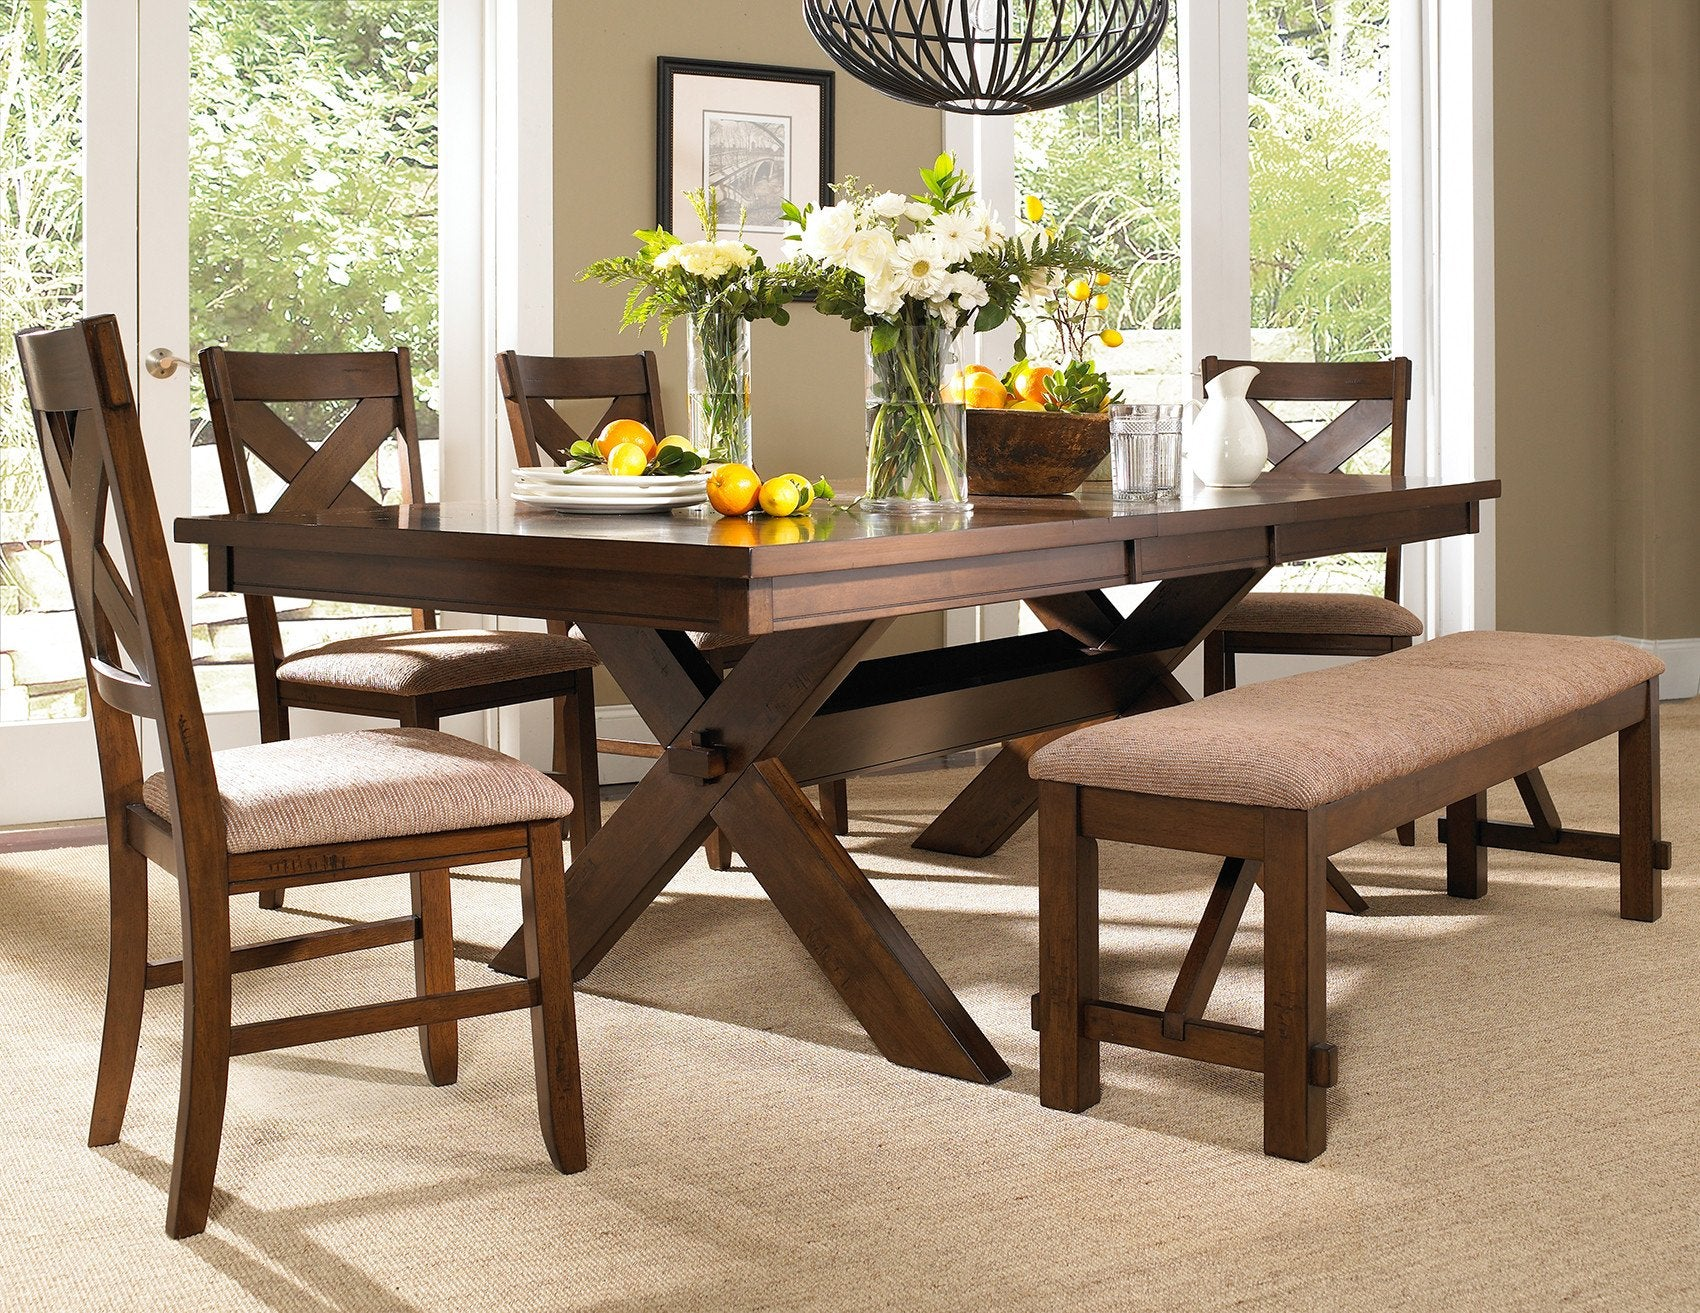 6-Piece Karven Solid Wood Dining Set with Table  4 Chairs and Bench